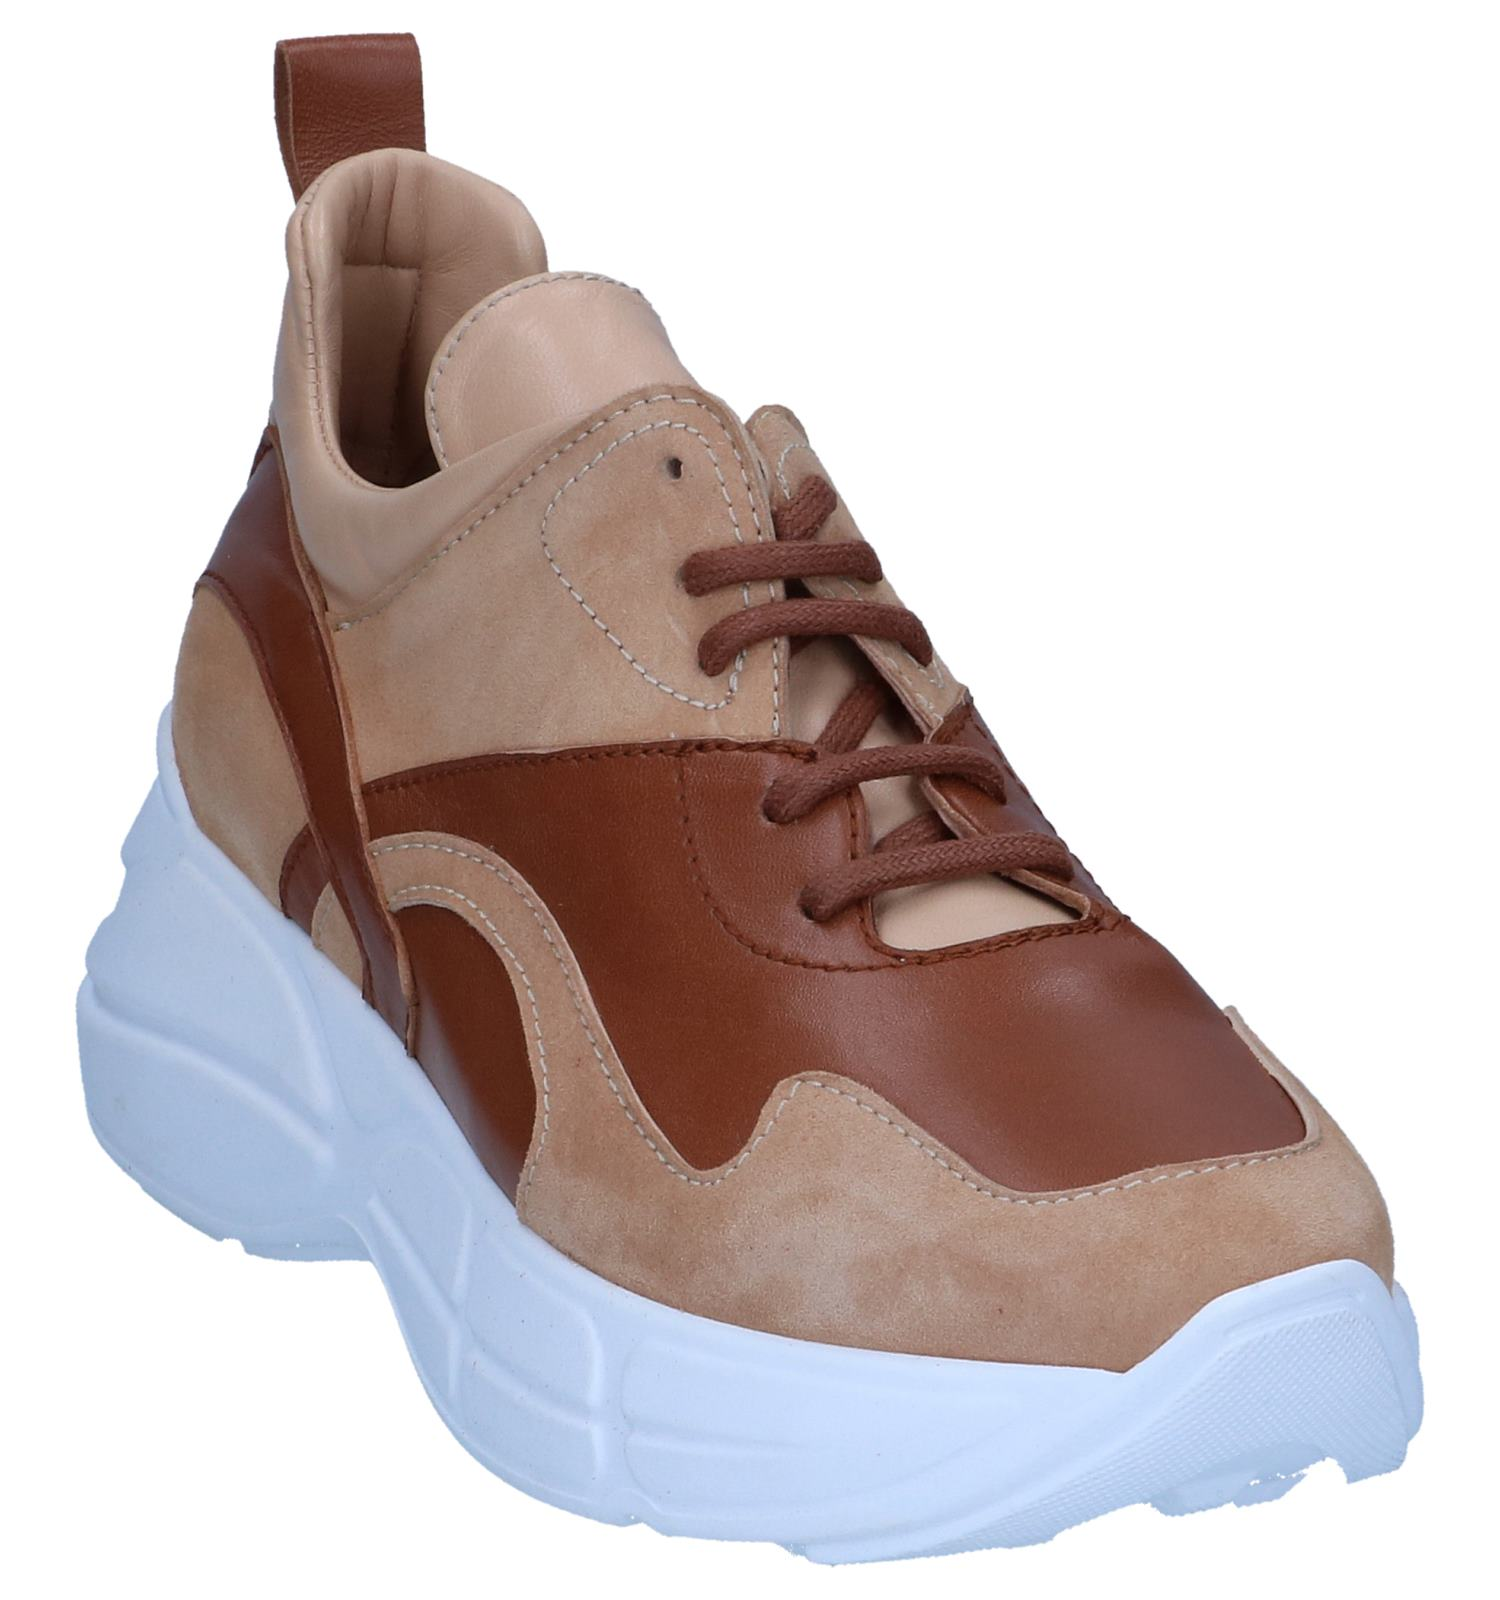 Three6five Sneakers Danay Sneakers Danay Cognac Three6five Sneakers Three6five Cognac Sneakers Danay Three6five Cognac Cognac DI9EH2